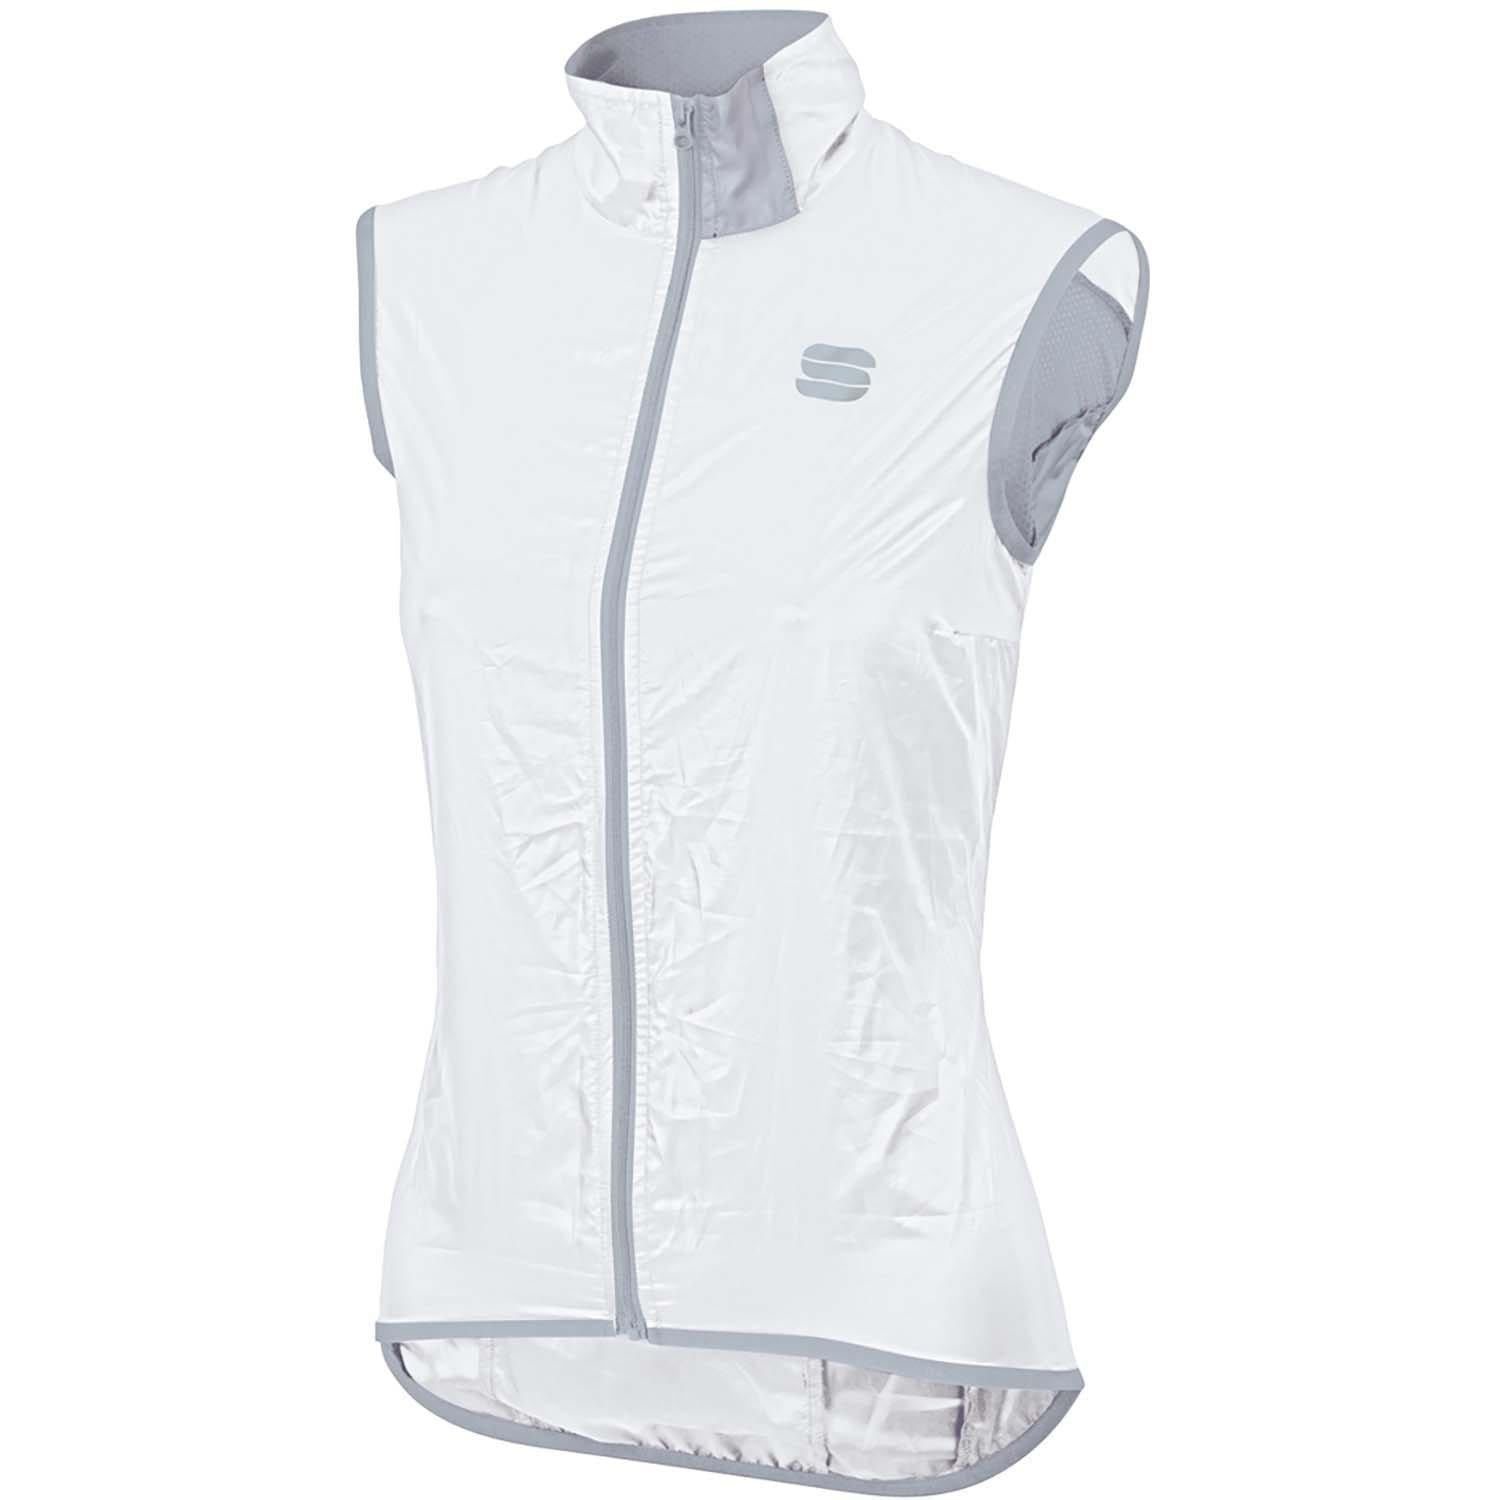 Sportful-Sportful Hot Pack Easylight Women's Vest-White-XS-SF020291011-saddleback-elite-performance-cycling